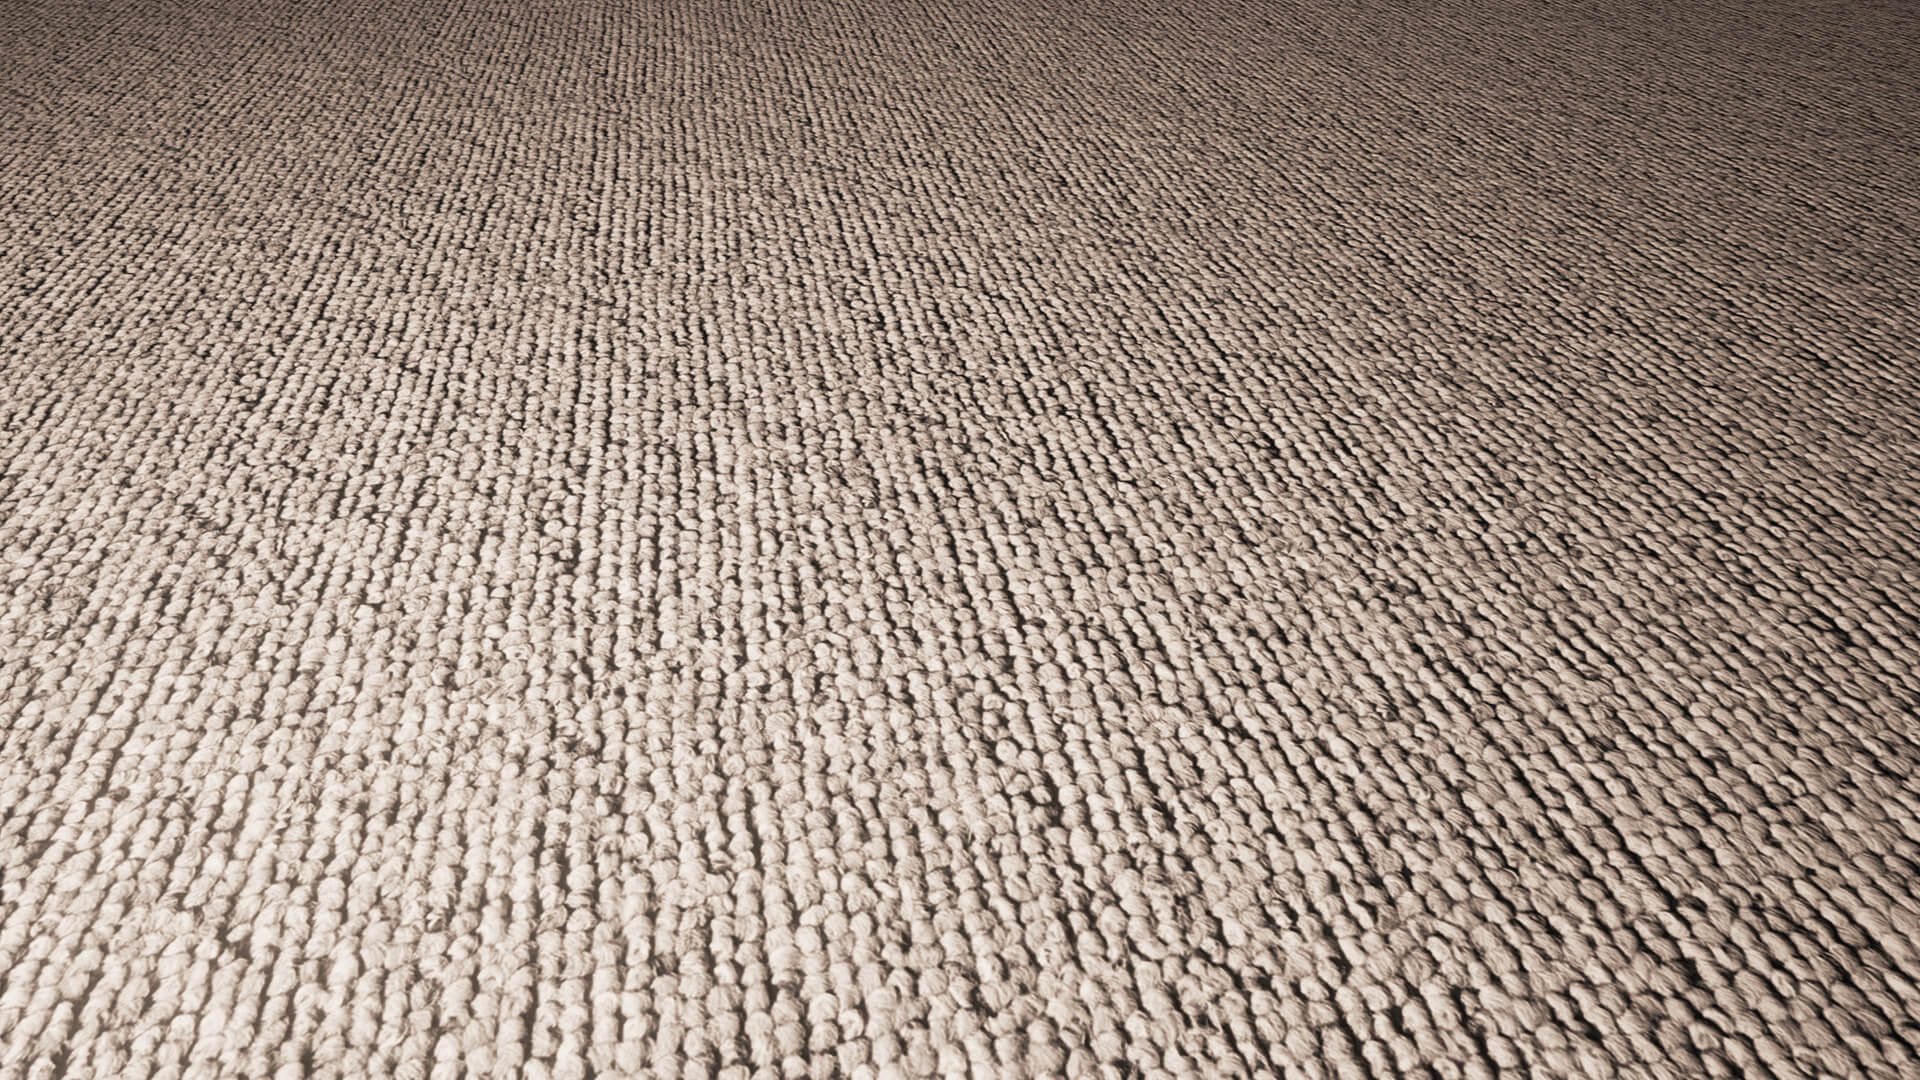 carpet material ue4 carpet vidalondon